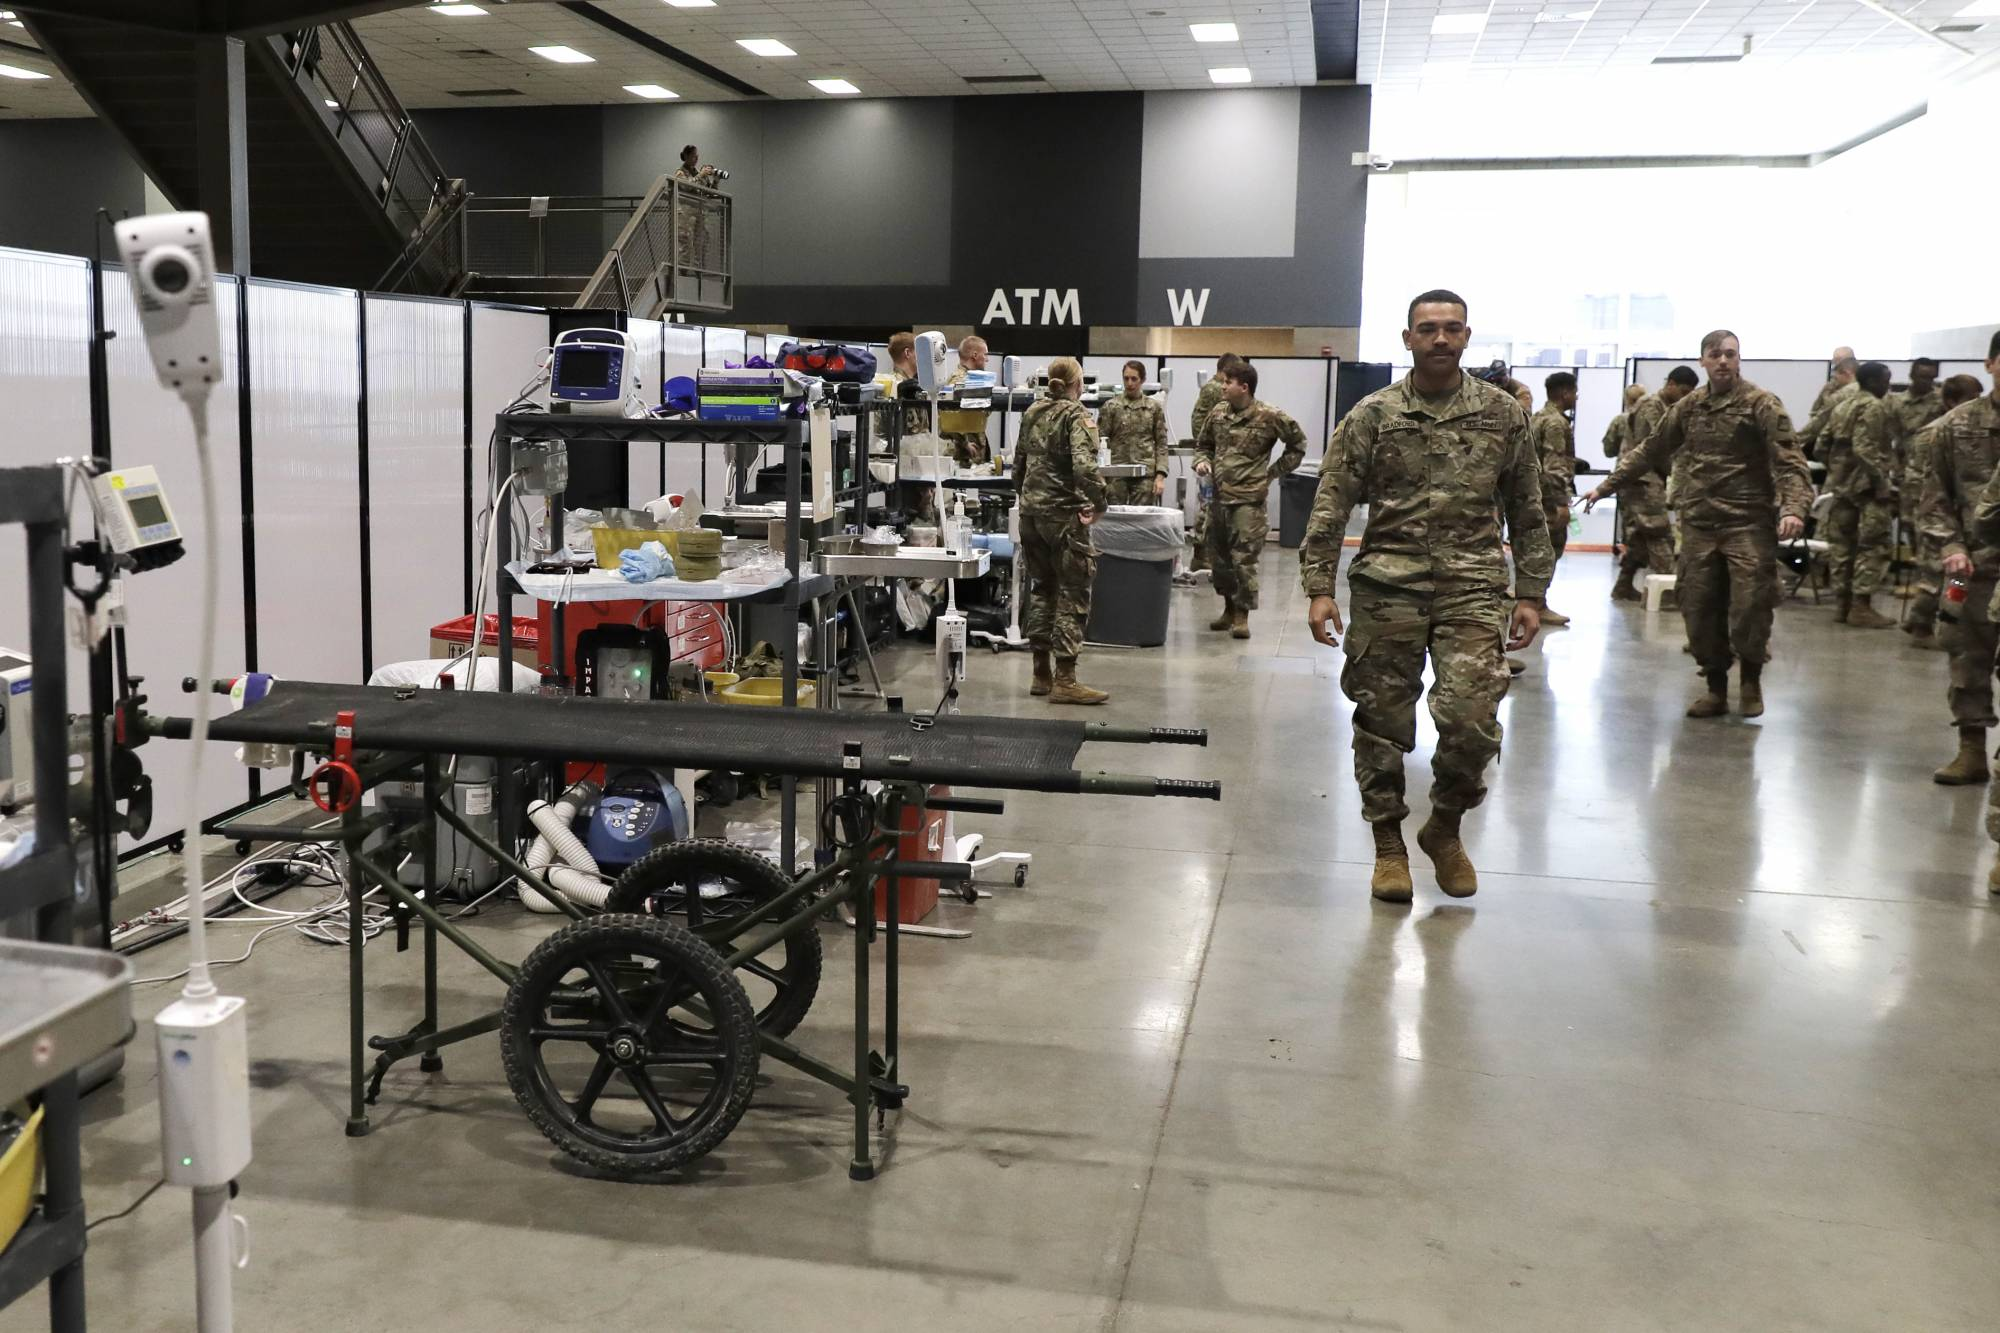 Soldiers walk through a treatment area following a training session at the site of a military field hospital, Sunday, April 5, 2020, at the CenturyLink Field Event Center in Seattle. Officials said the facility, which will be used for people with medical issues that are not related to the coronavirus outbreak, has more than 200 beds and is ready to receive patients. (AP Photo/Ted S. Warren)